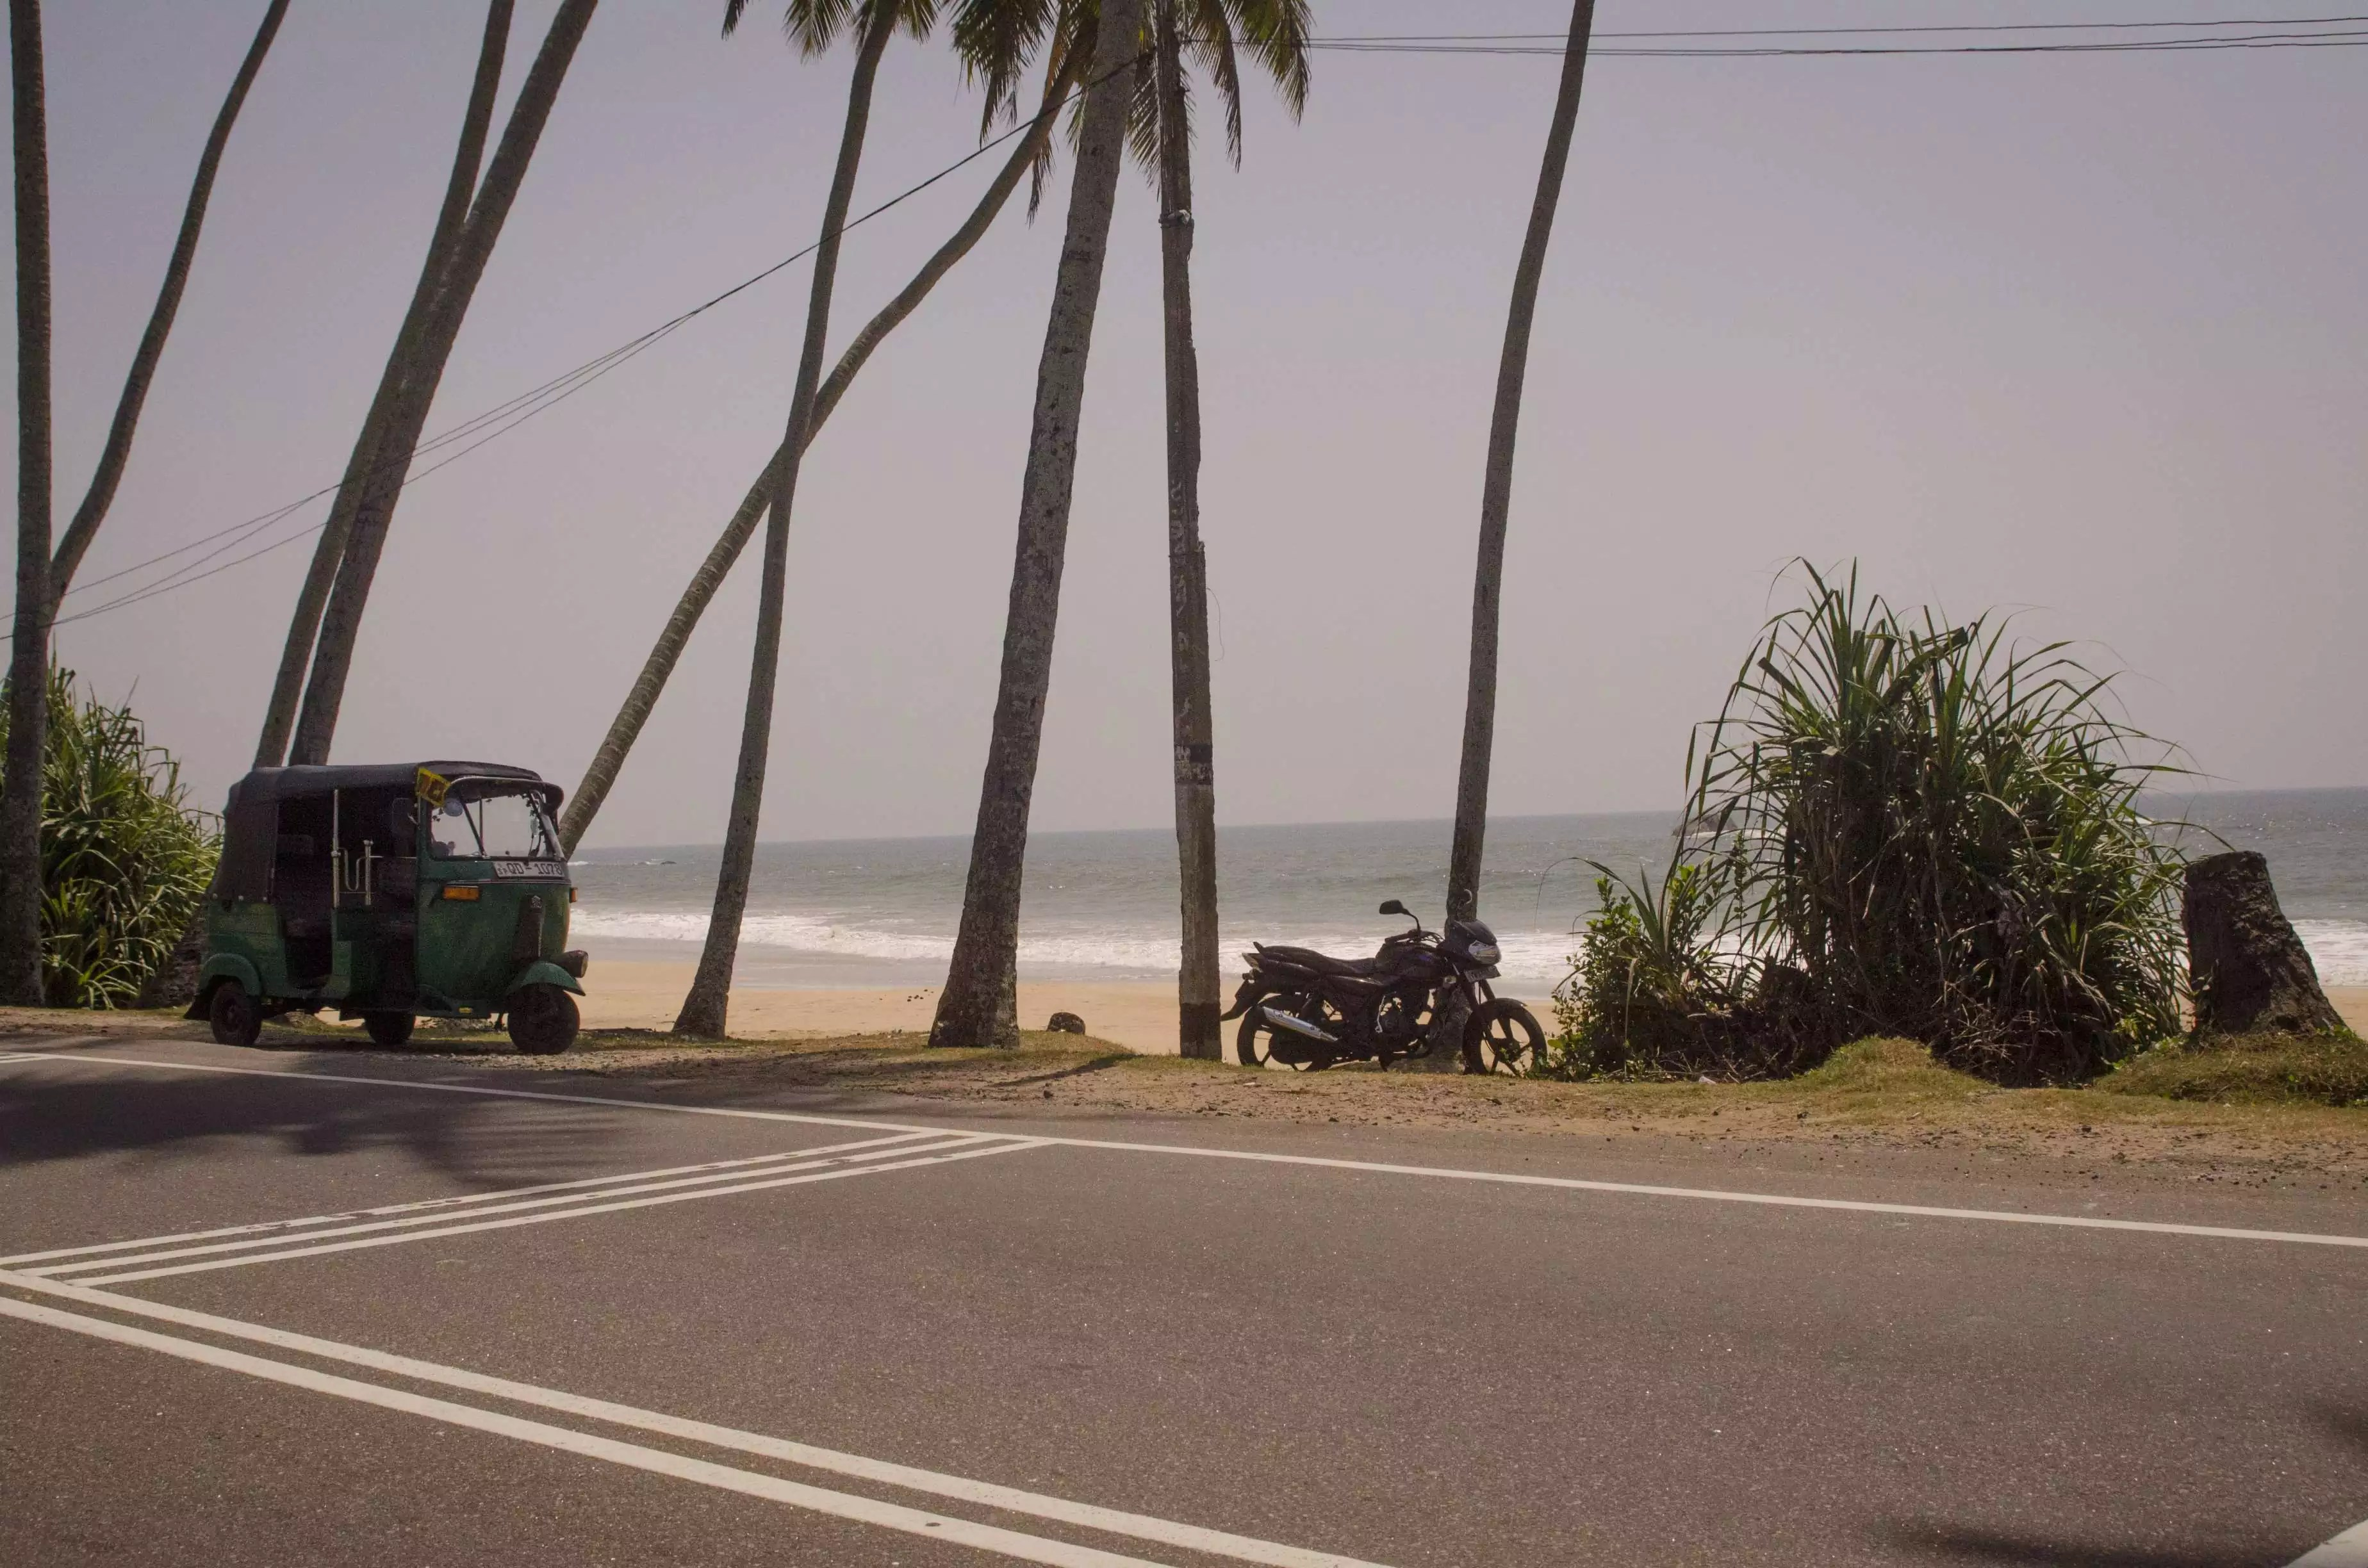 Visiting Sri Lanka: The view from the road